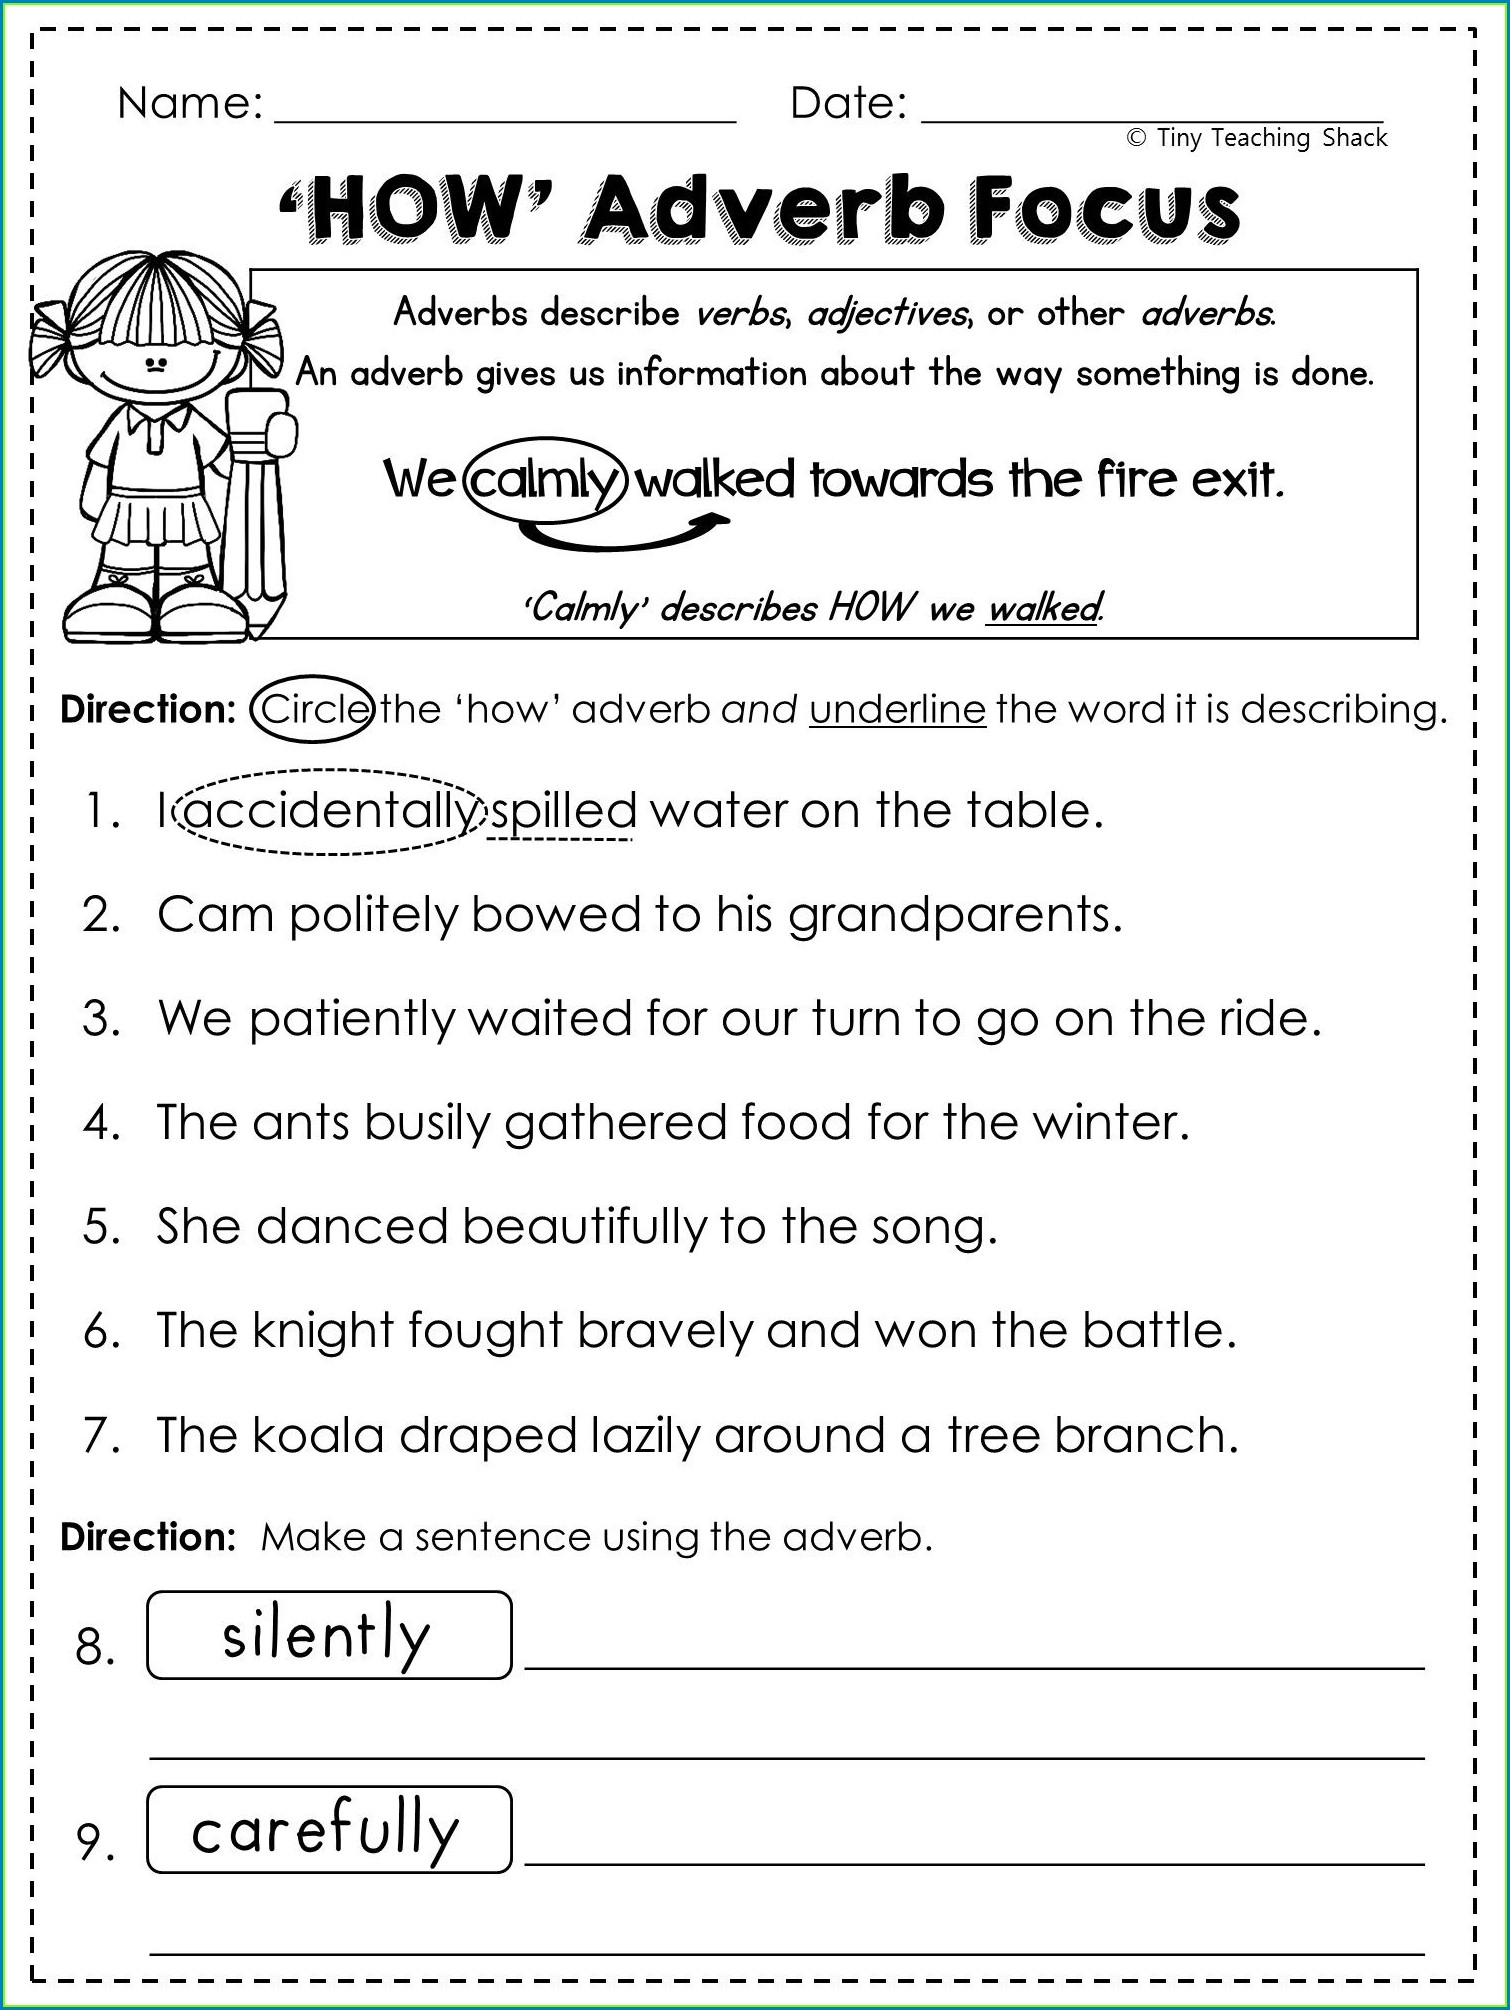 Grade 2 Ly Adverbs Worksheet